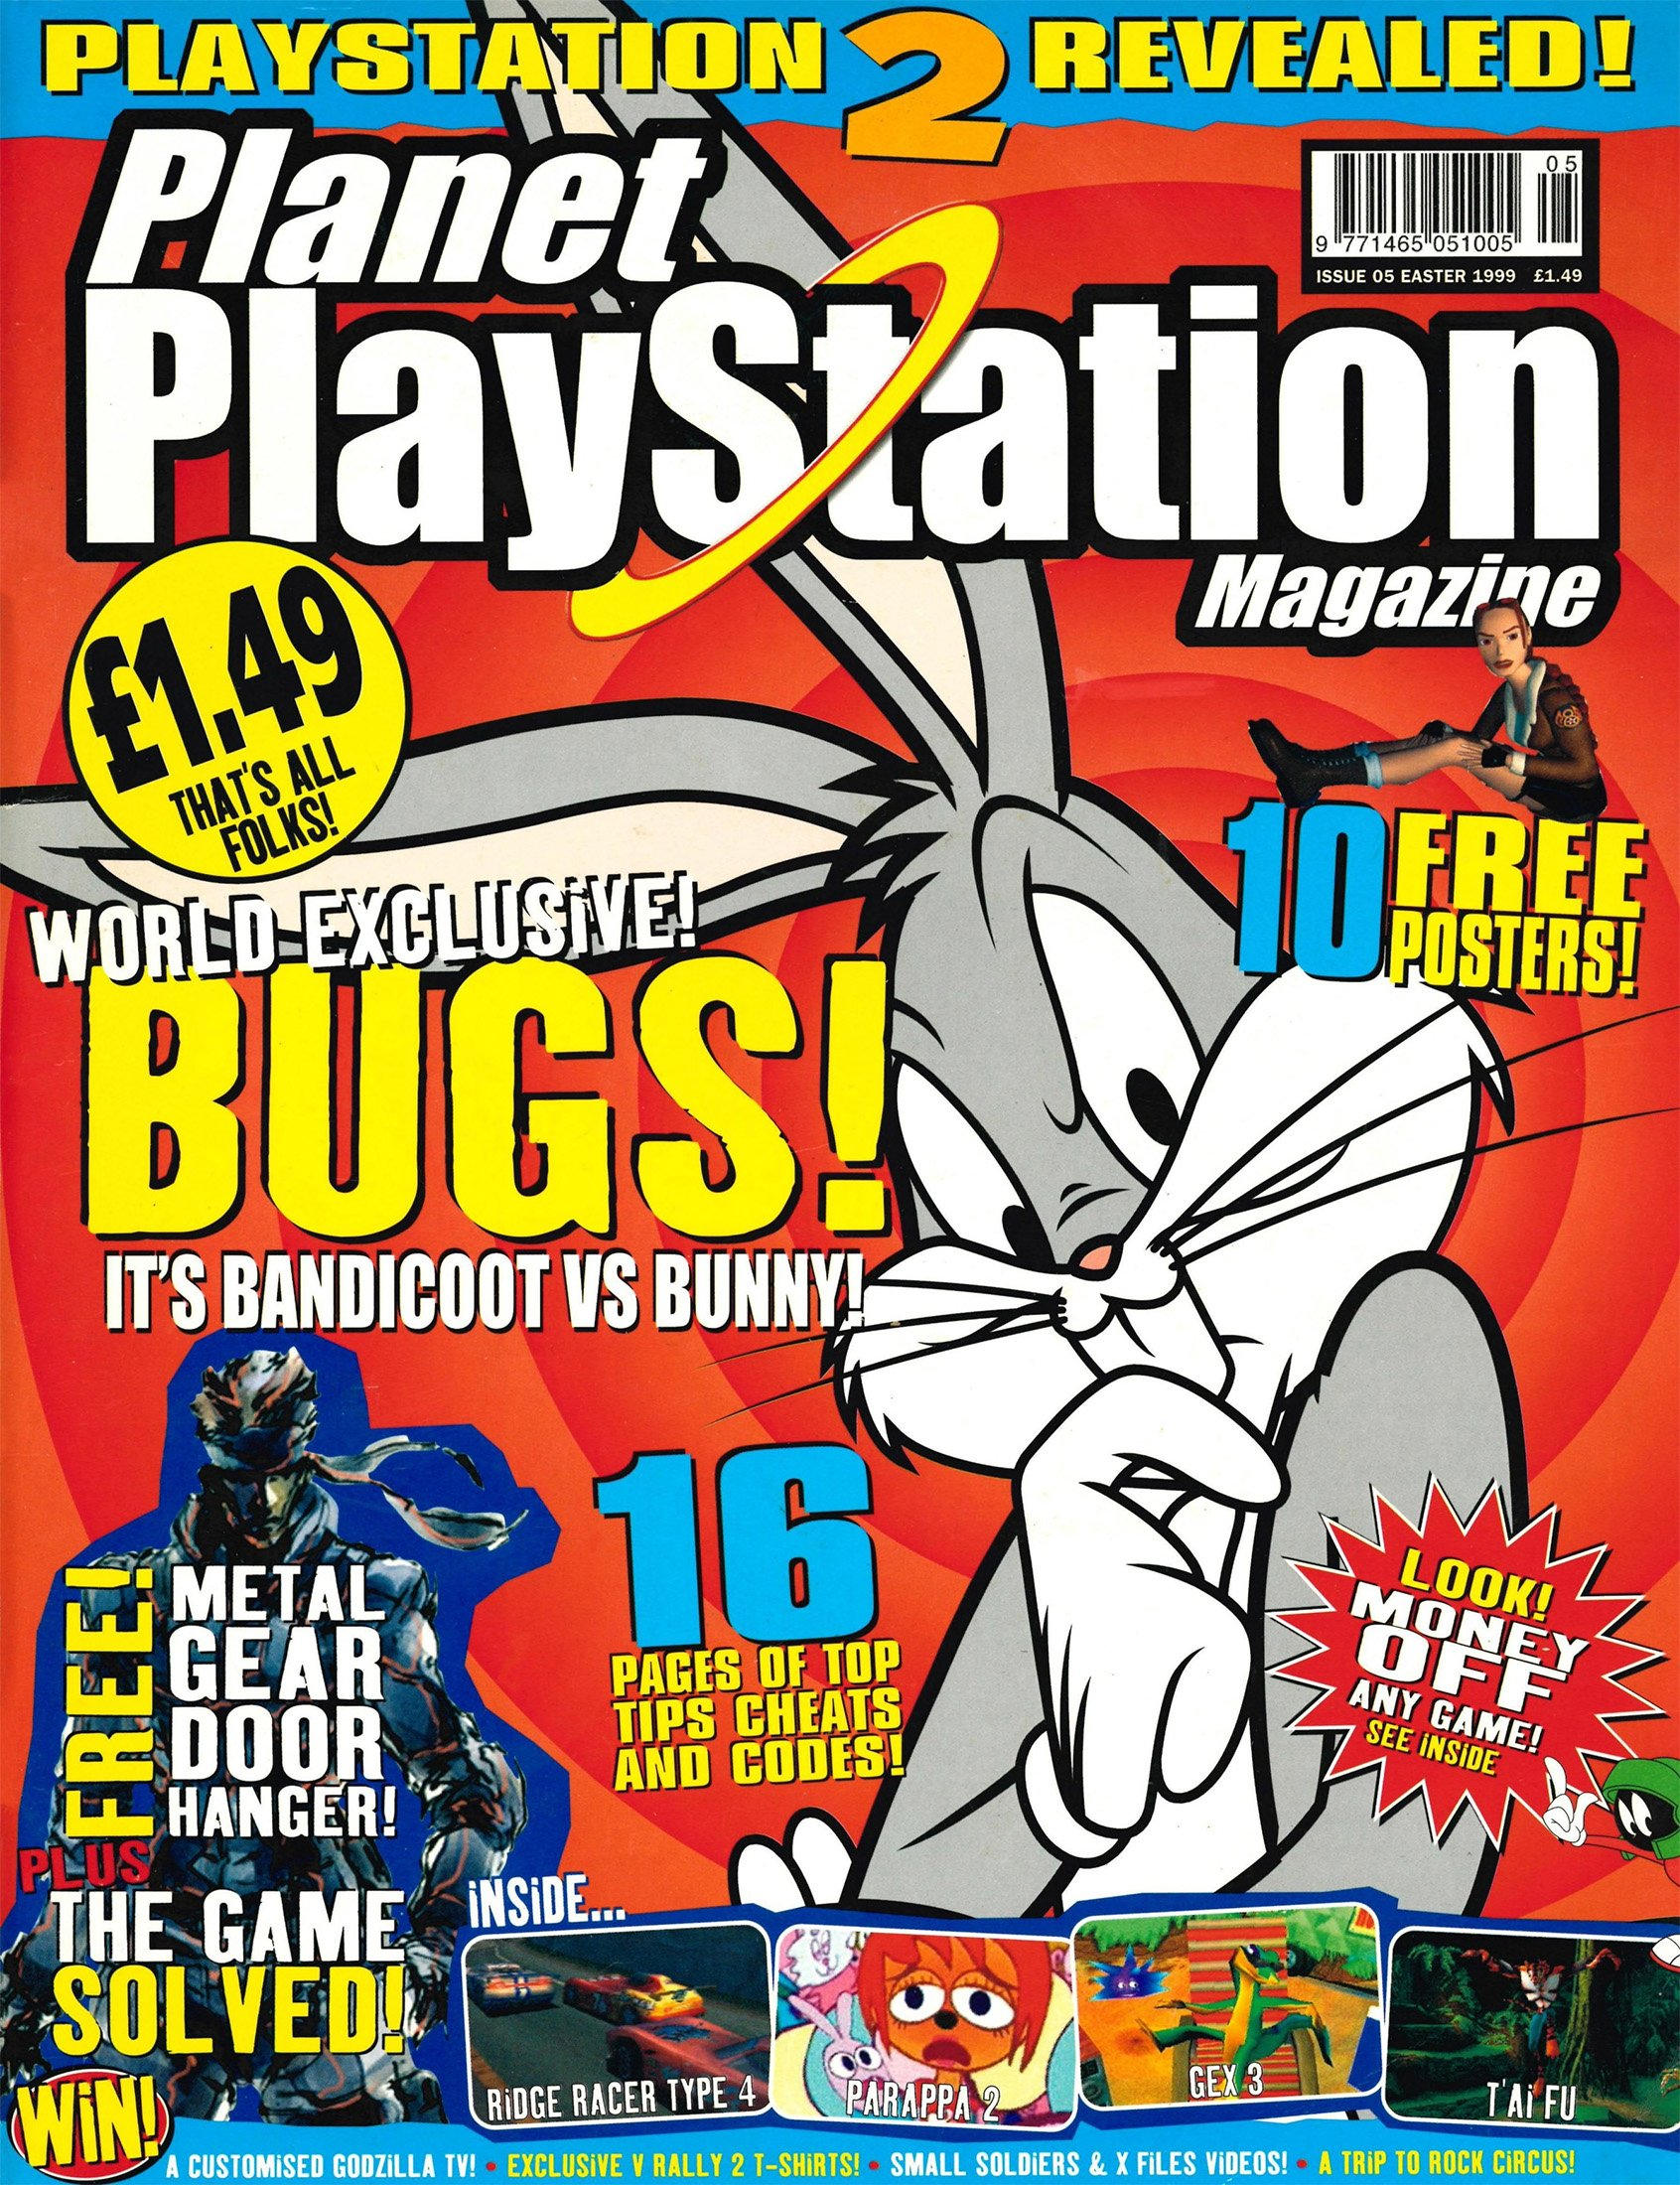 Planet Playstation Issue 05 (Easter 1999)